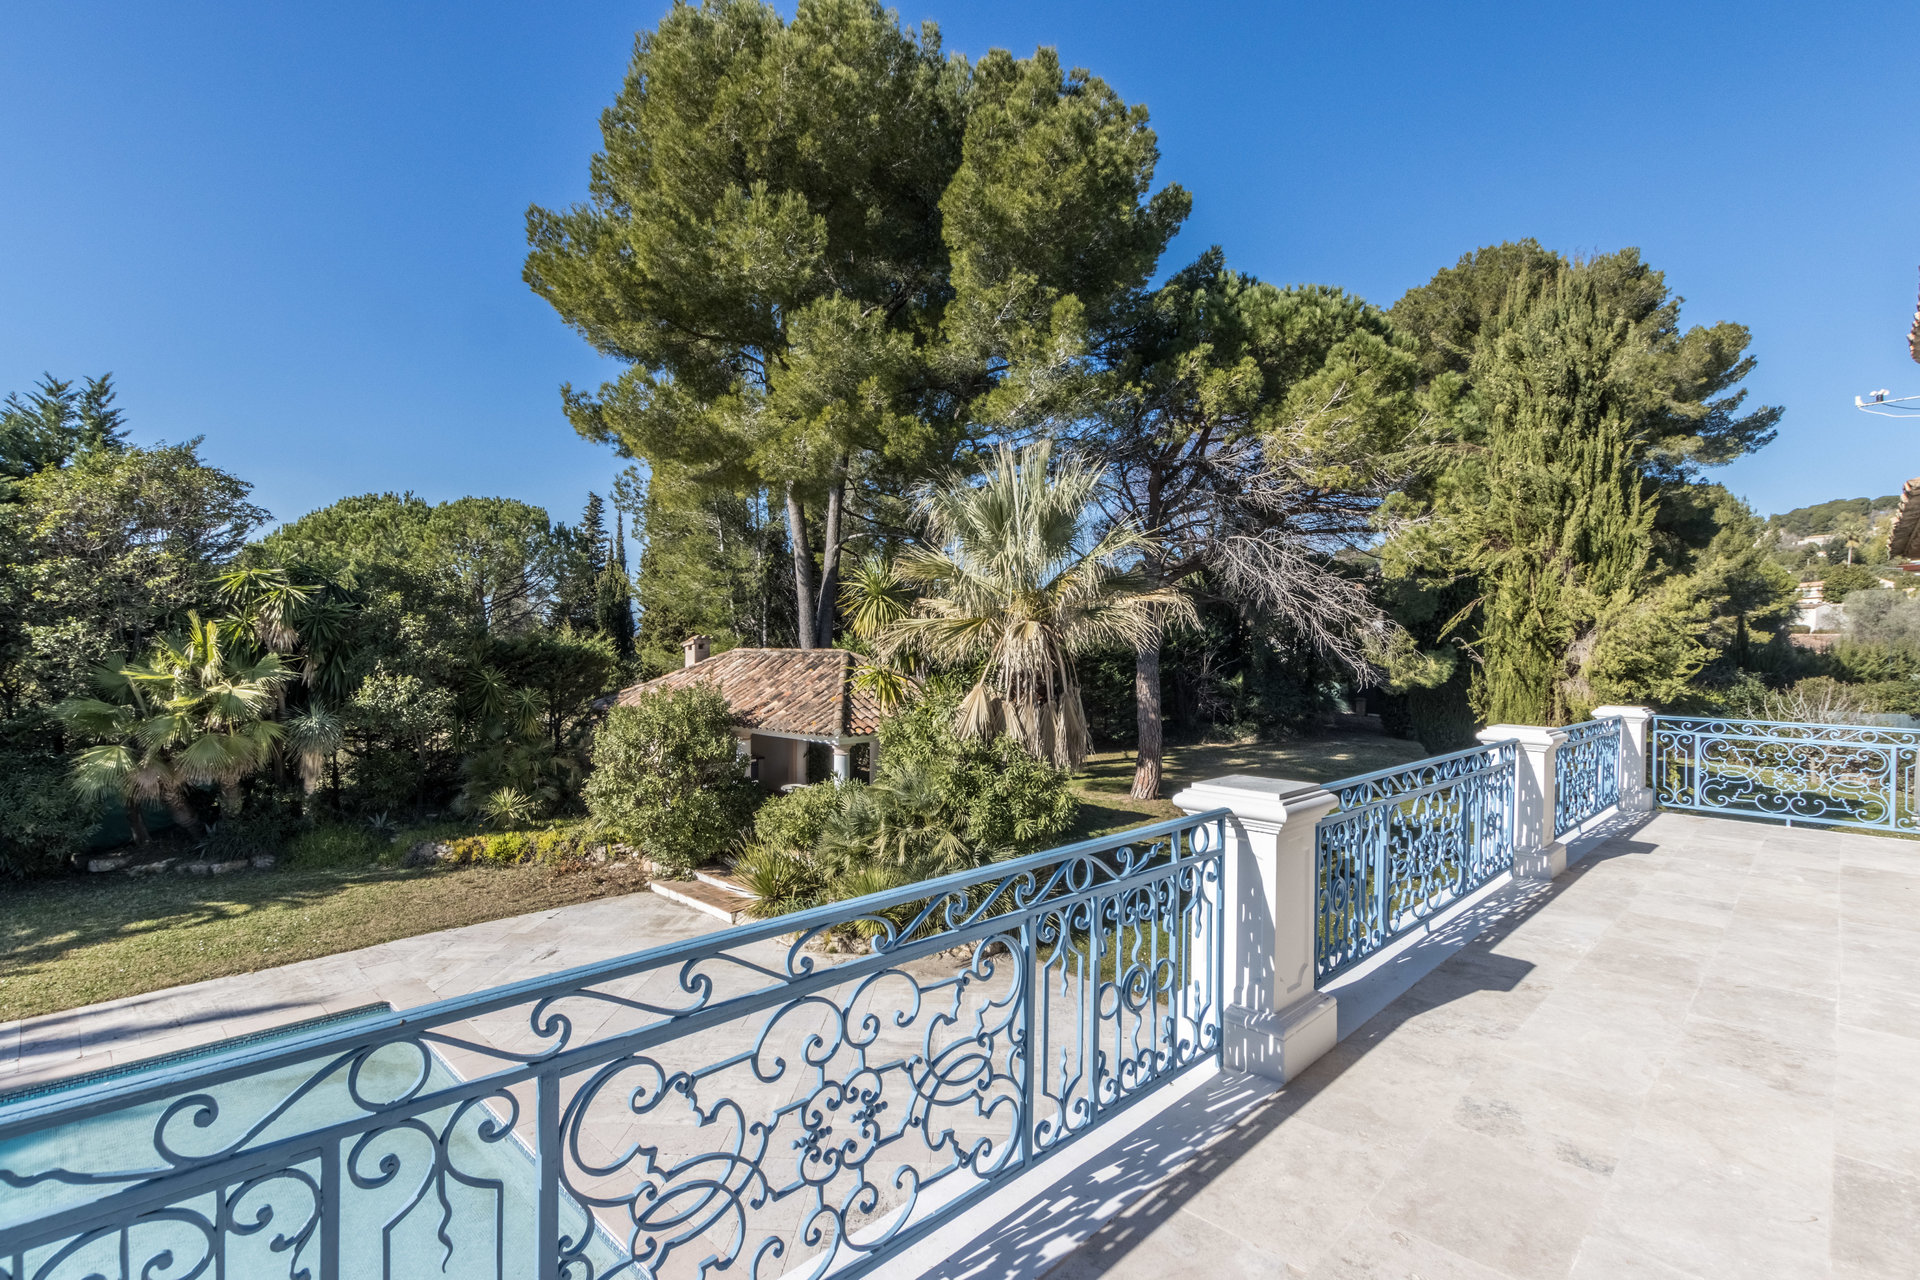 MOUGINS - VILLA 550m2 - PISCINA - TERRENO 4500M2